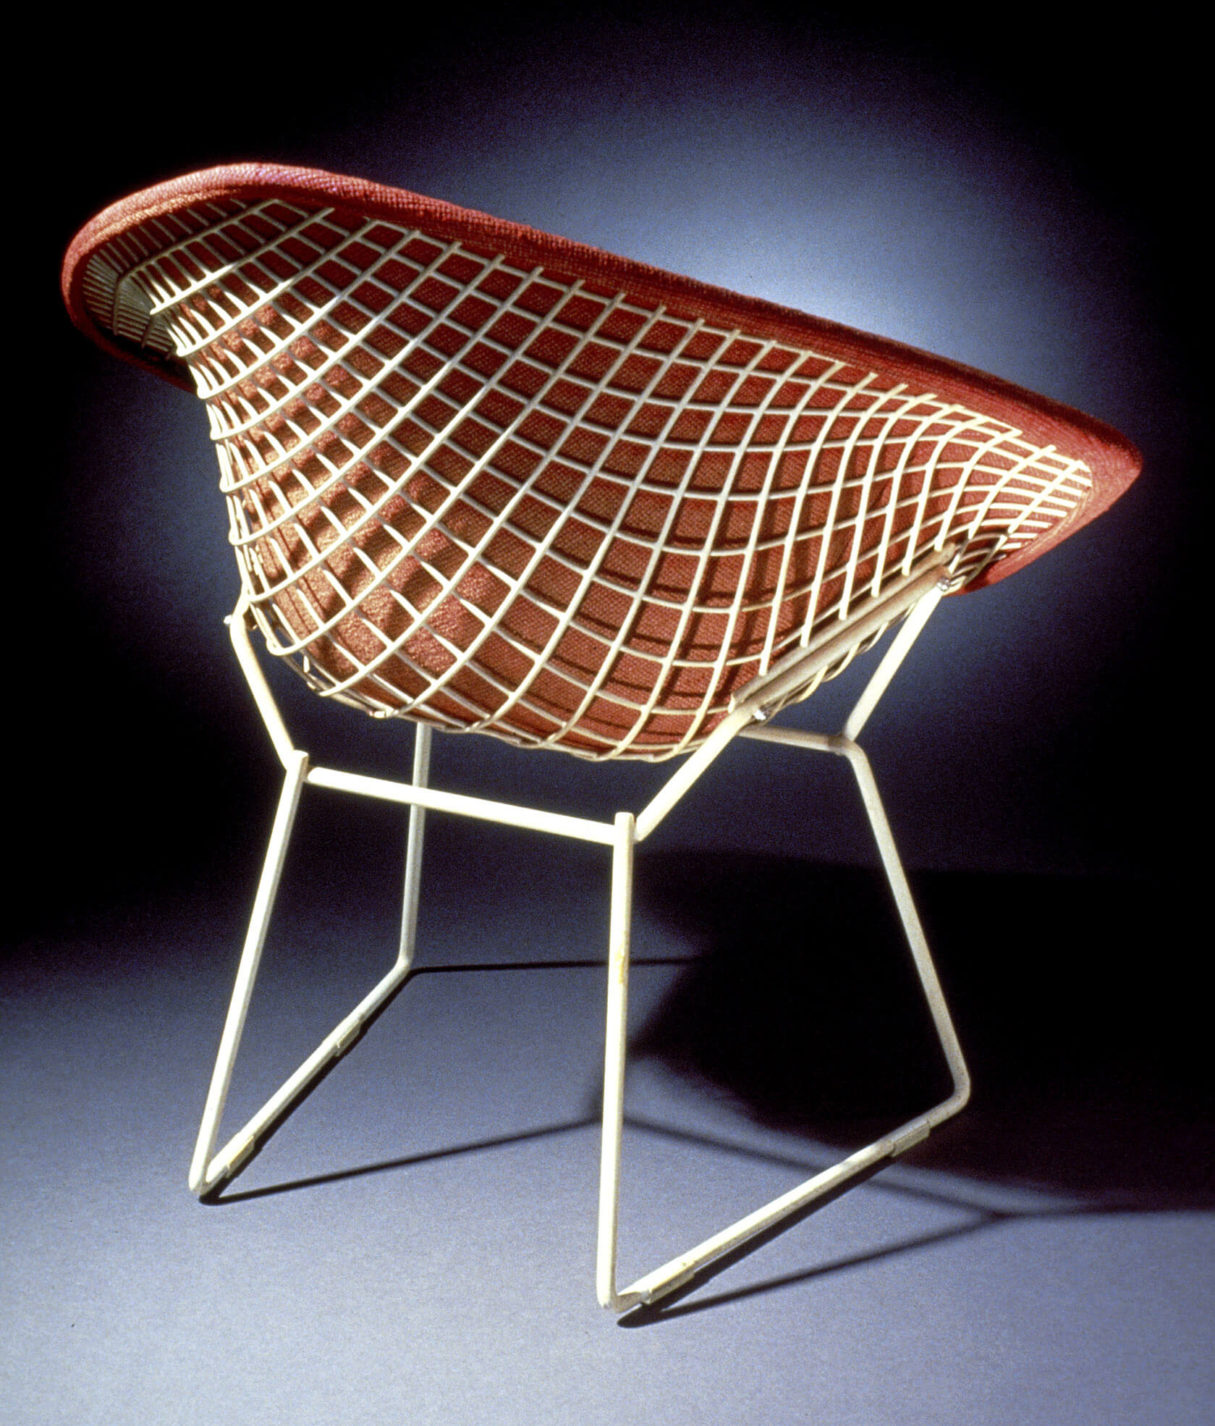 White wire-framed armchair viewed from the back. Seat, back, and arms are formed from an open wire mesh and covered on the front with red upholstery.